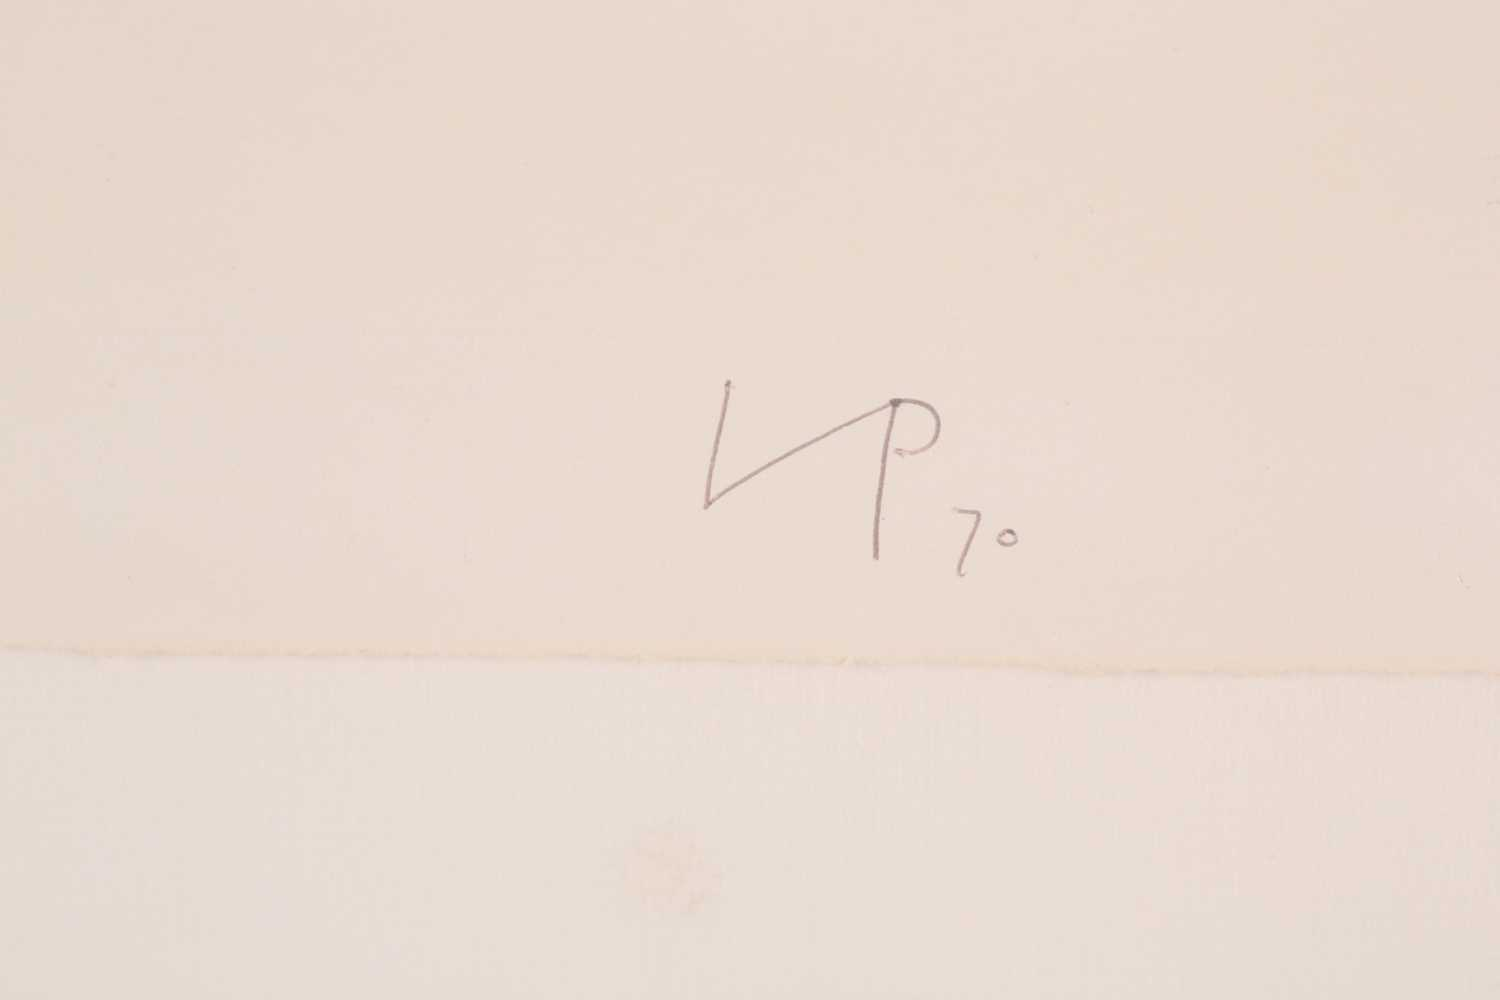 Victor Pasmore RA (1908-1998), 'Linear Development II', from 'Points of Contact', 1970', artist - Image 4 of 5